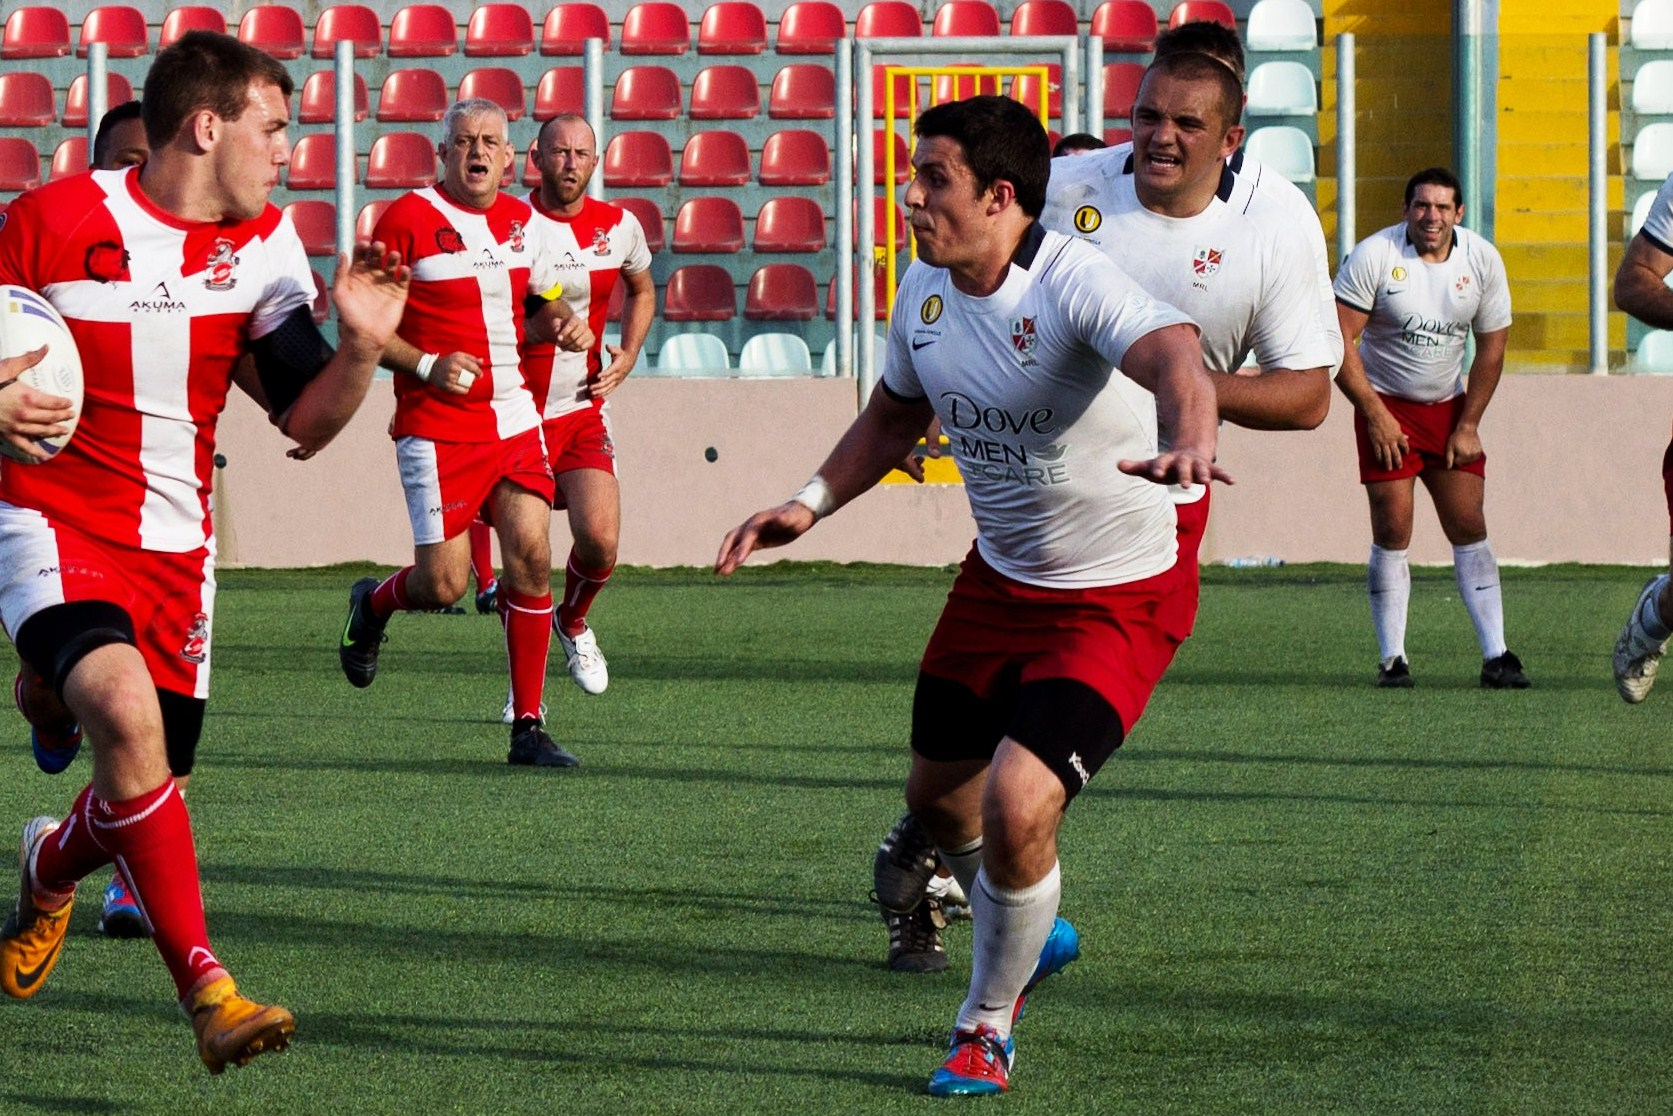 Malta to take on Hungary at St Mary's